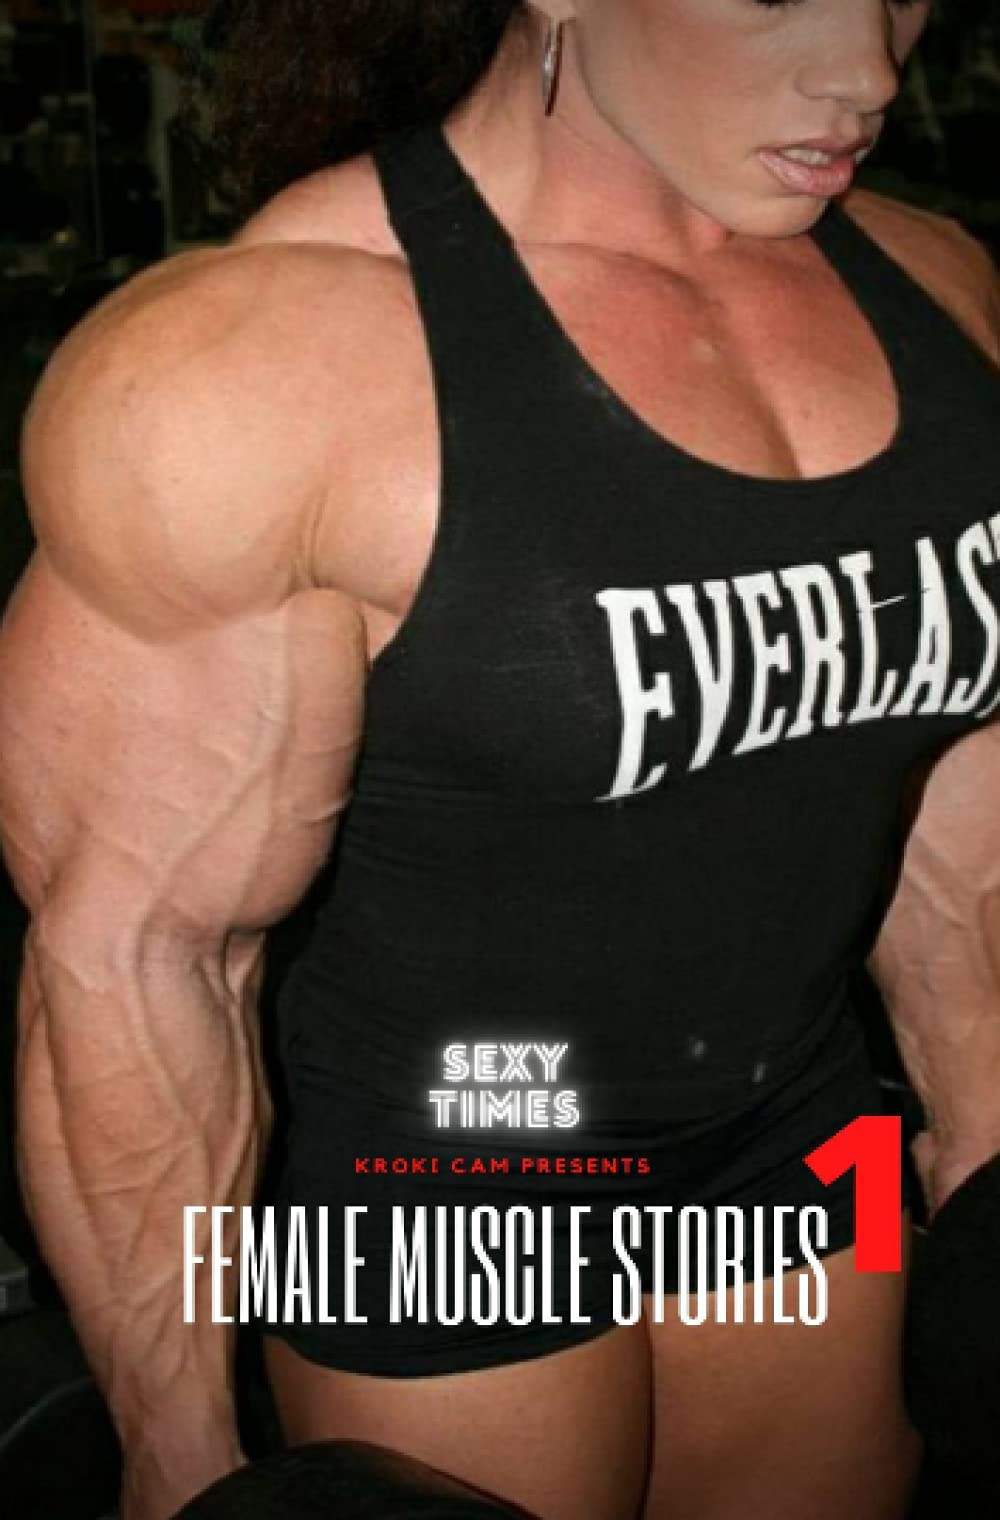 Female Muscle Stories